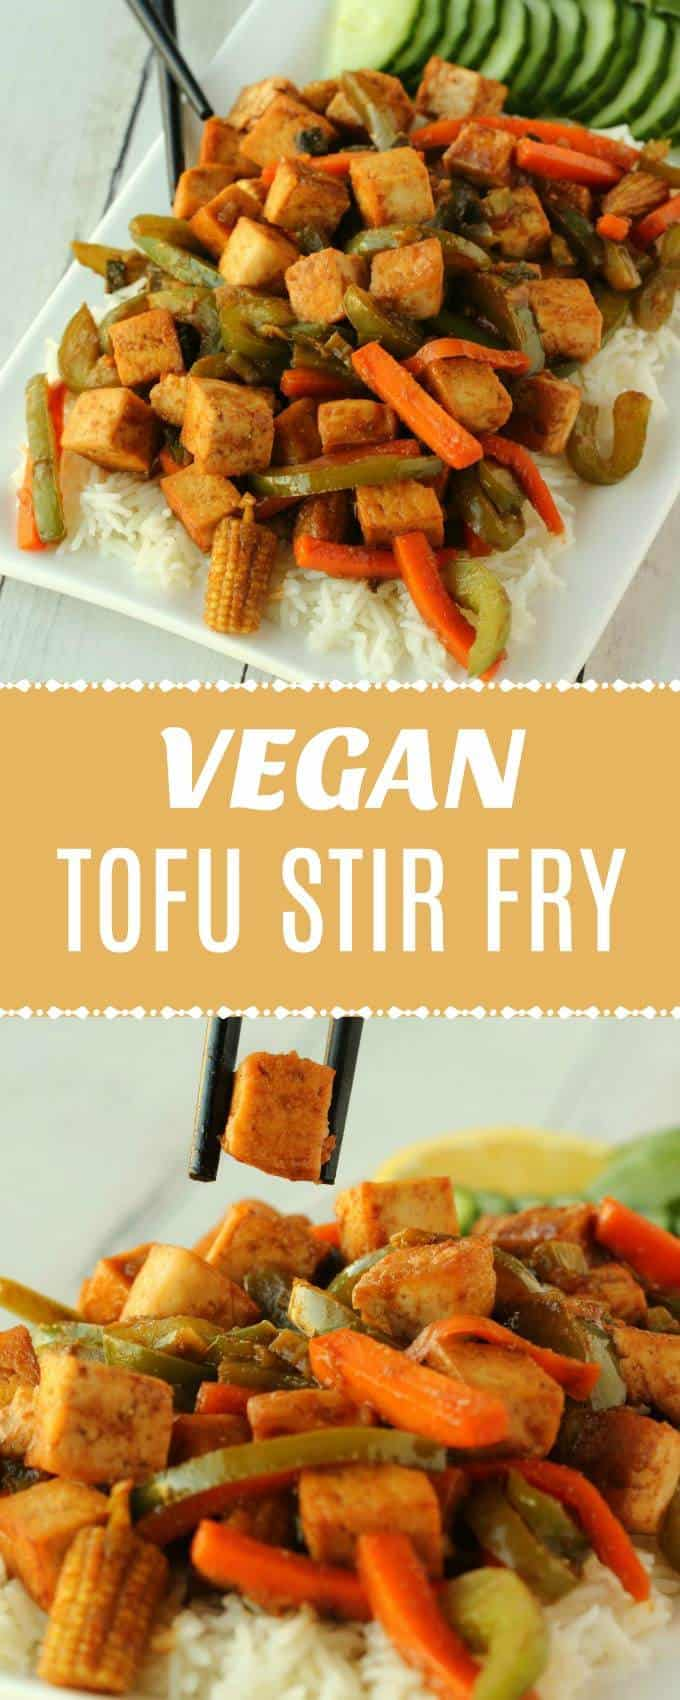 Quick and easy veggie-packed vegan tofu stir fry. This flavorful and satisfying meal is high in protein and perfect for a weeknight plant based dinner served with basmati rice or cauliflower rice. Gluten-Free. | lovingitvegan.com